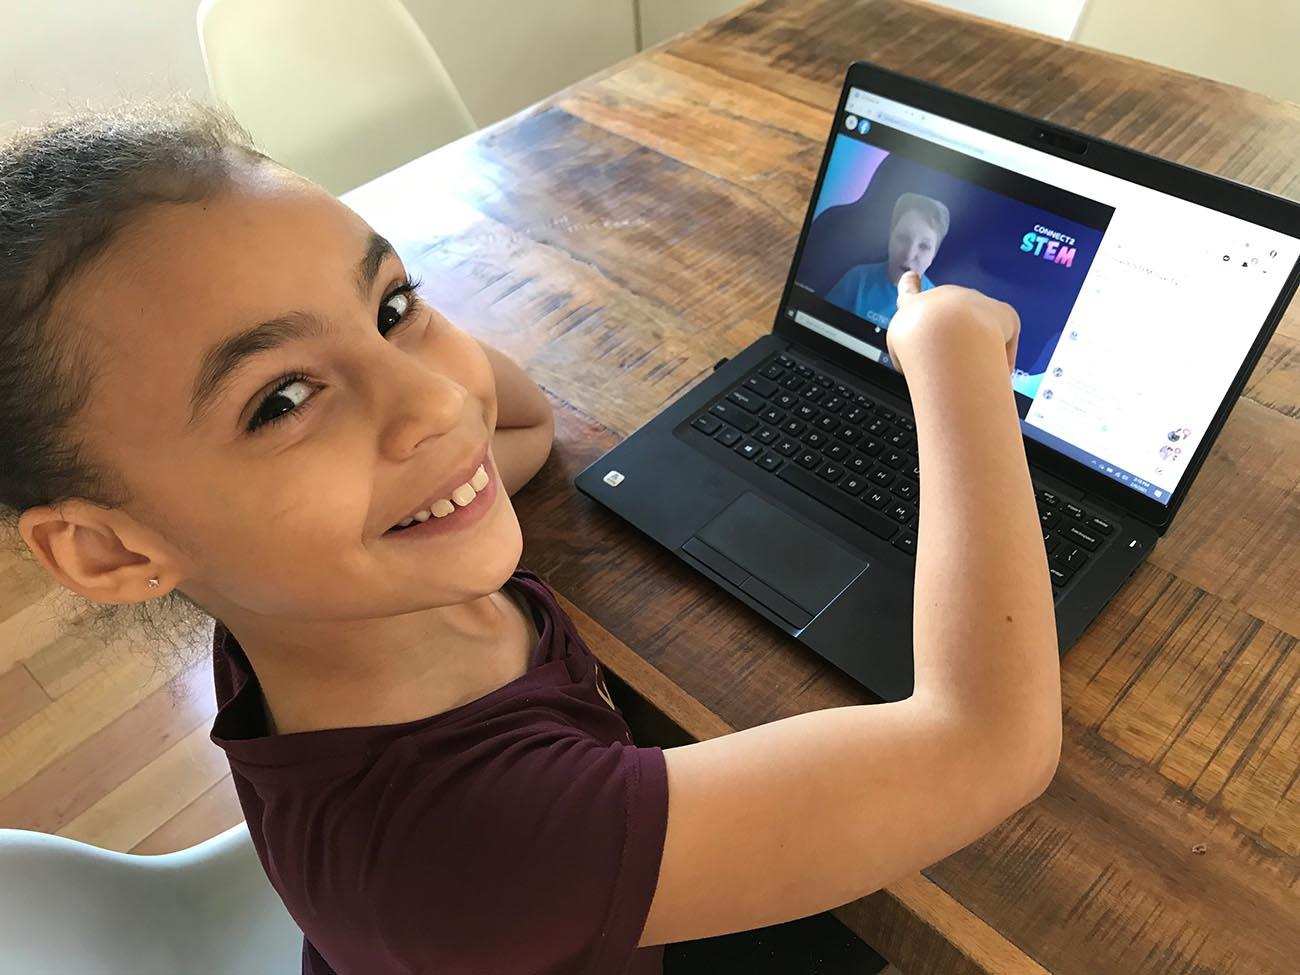 New this year, Connect2STEM features weekly interactive activities and lessons through Connect2STEM Live TV.